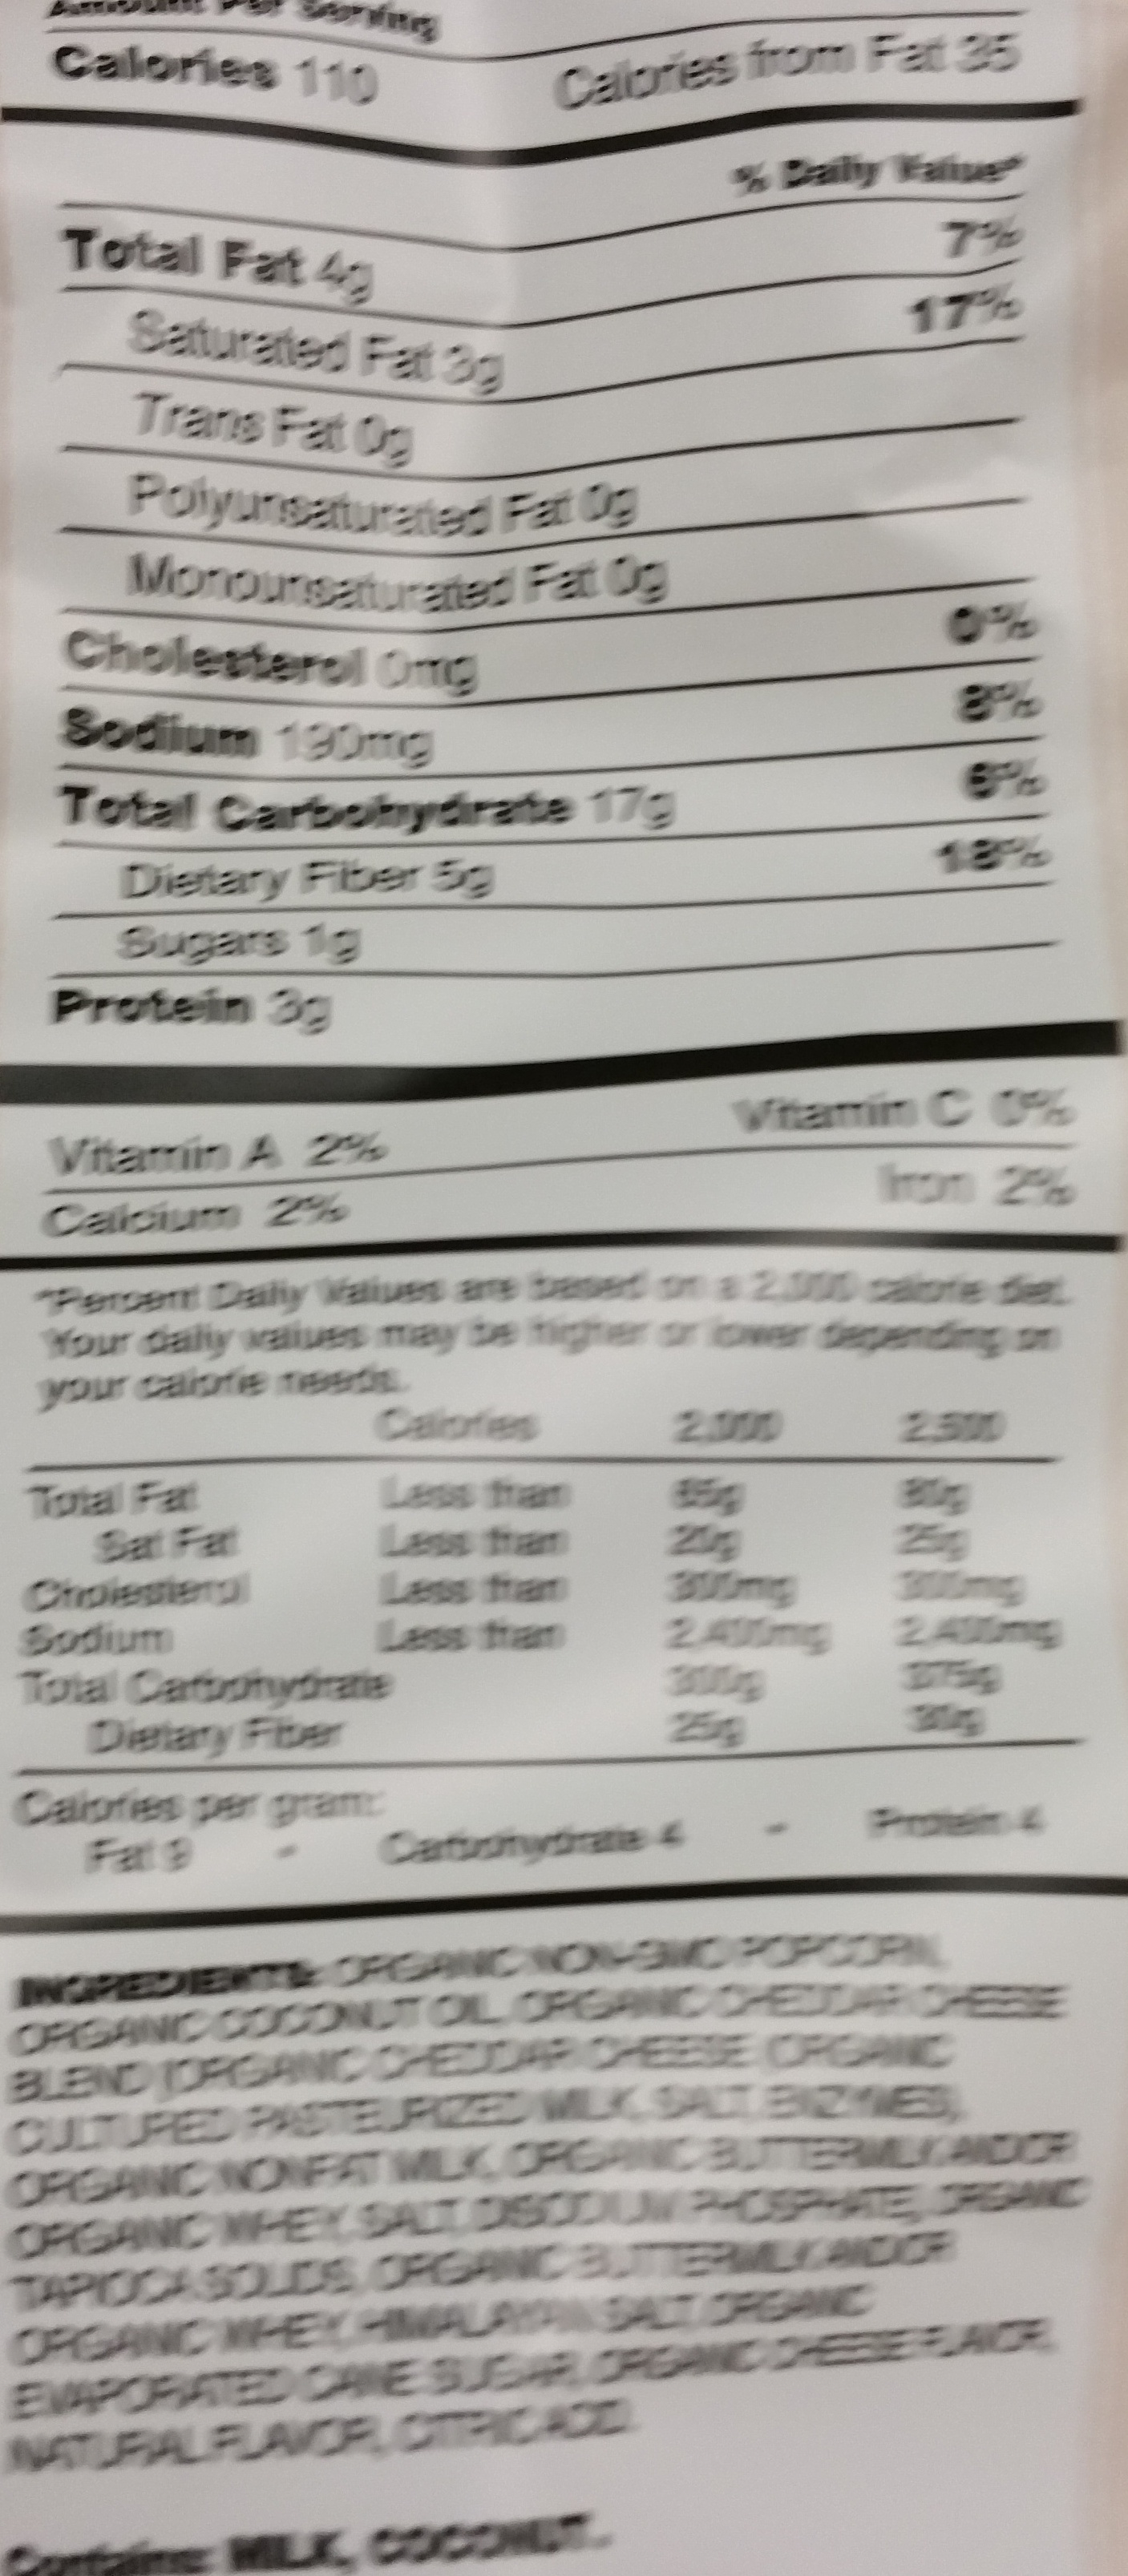 Classic cheddar - Nutrition facts